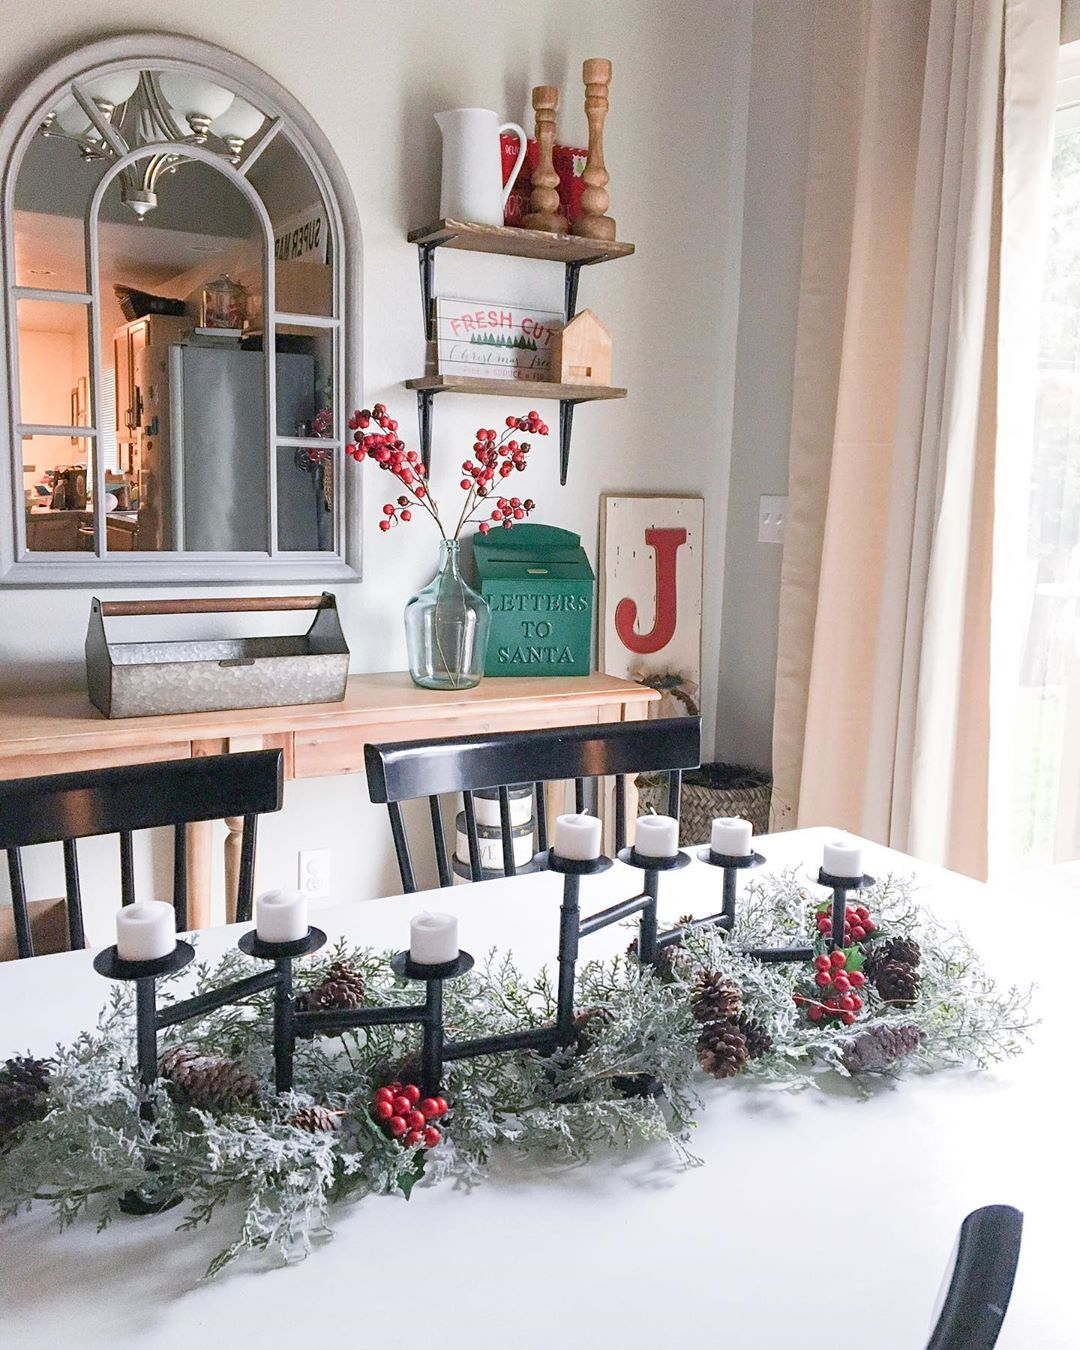 Christmas Decorating Has Begun We Are Holding Out On Decorating The Outside Until We Get Our Real Tree After Thanksgiving Decor Home Decor Dining Room